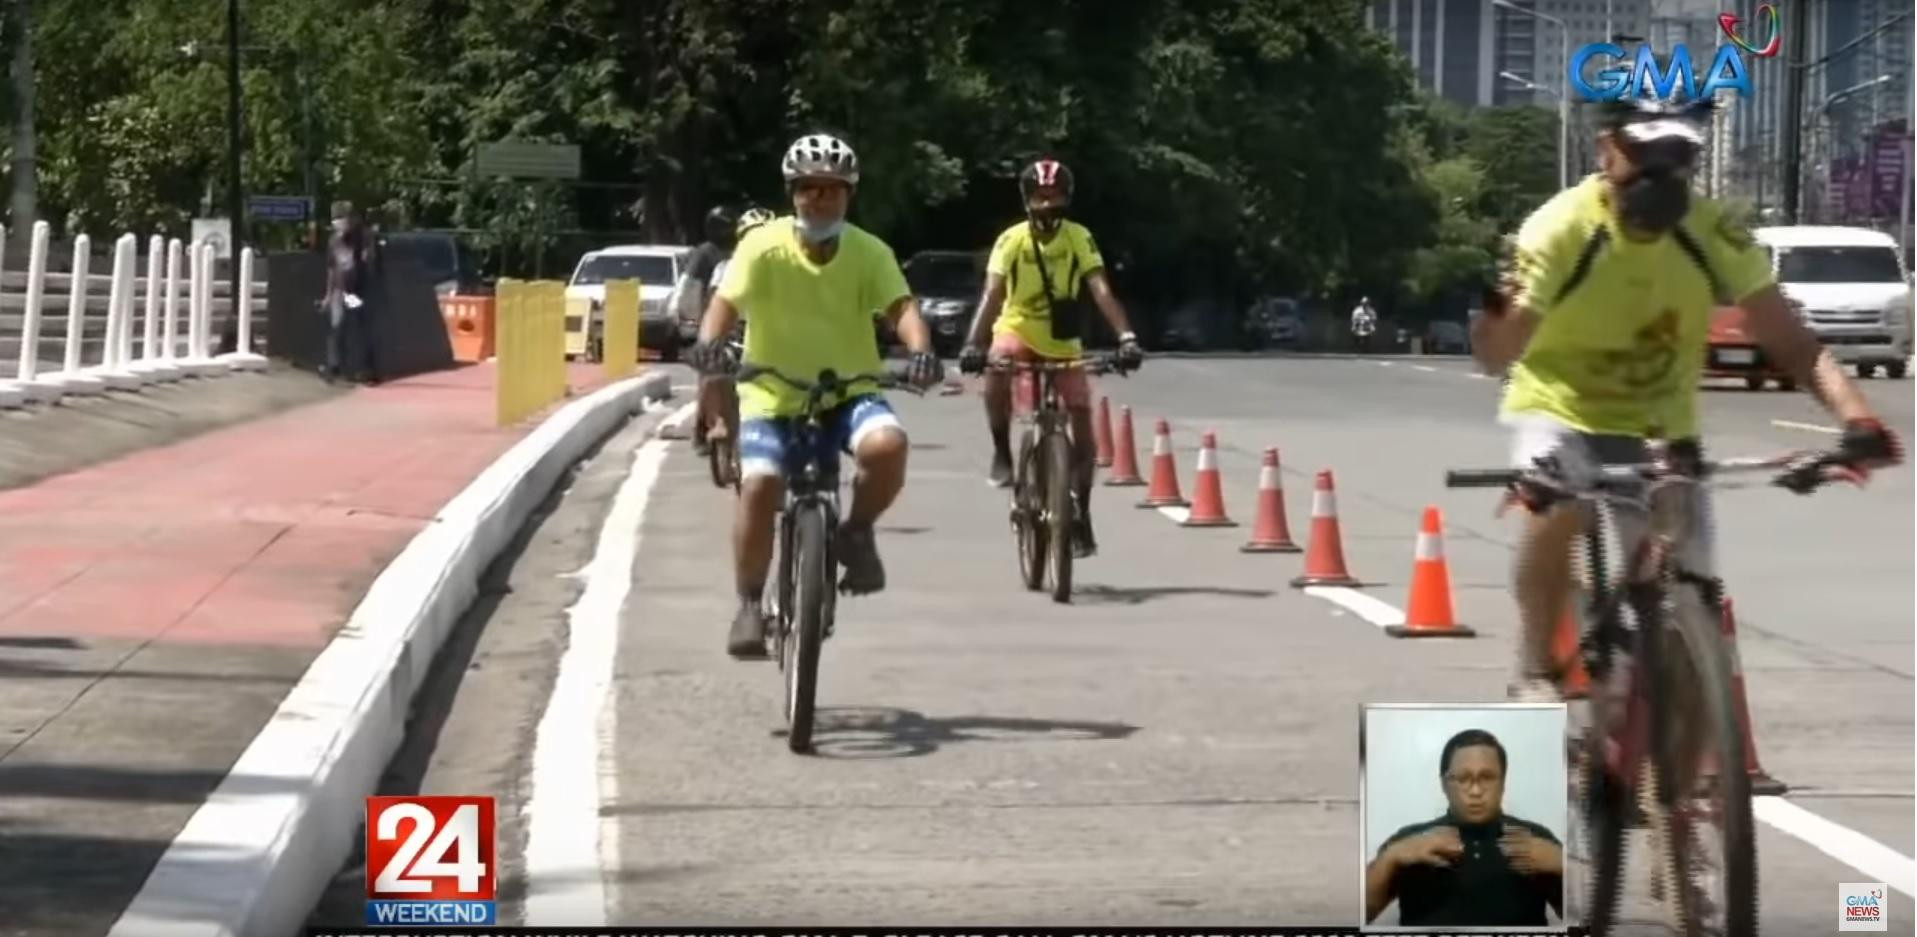 MMDA still studying protection for bike lanes